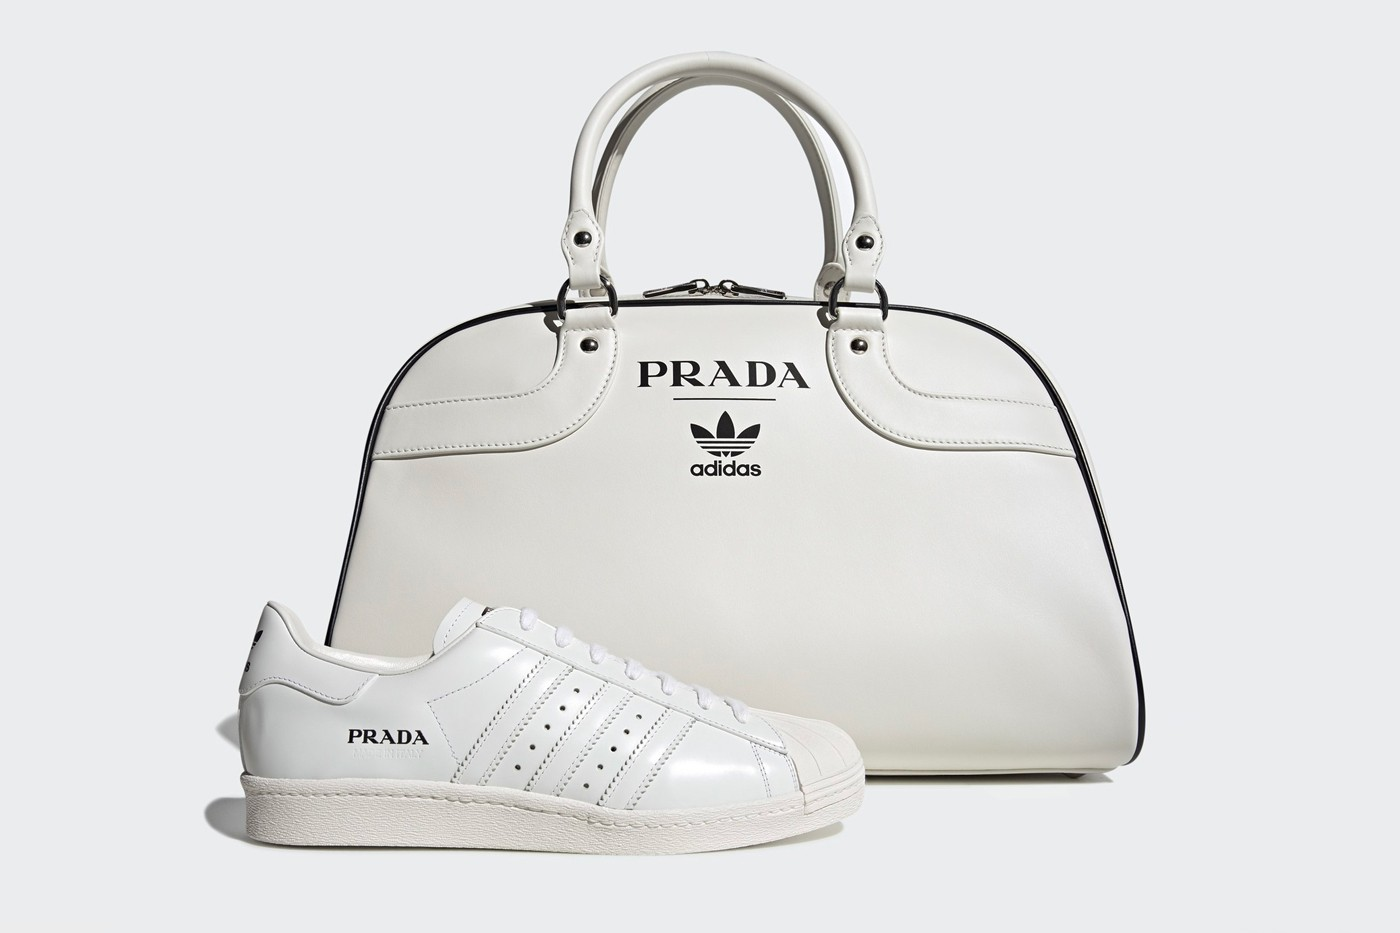 Superstar & Bowling Tote Bag Collection by Prada and Adidas.